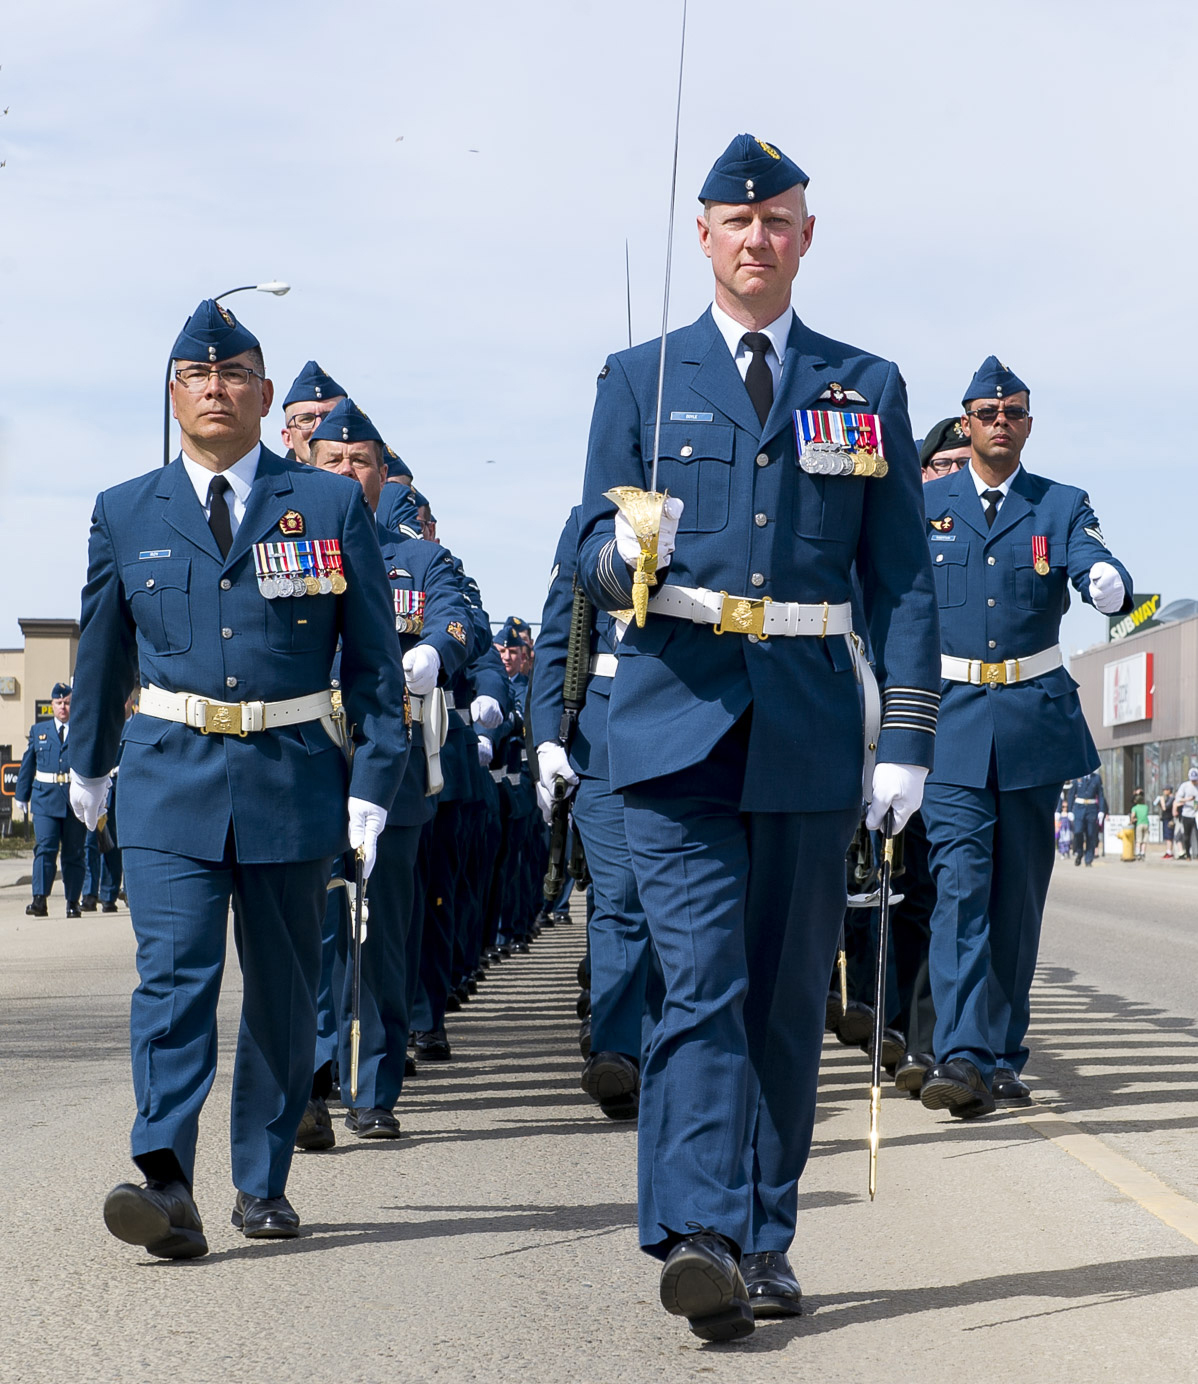 4 Wing Cold Lake commanding officer, Colonel Paul Doyle (front) and 4 Wing chief warrant officer CWO Alain Roy (left), lead wing personnel away from the Town of Bonnyville at the conclusion of the Freedom of the City for the Town of Bonnyville. 4 Wing Cold Lake was granted Freedom of the City for the Town of Bonnyville and Municipal District of Bonnyville, Alberta, on May 5, 2017. PHOTO: Corporal Justin Roy, CK07-2017-0343-008